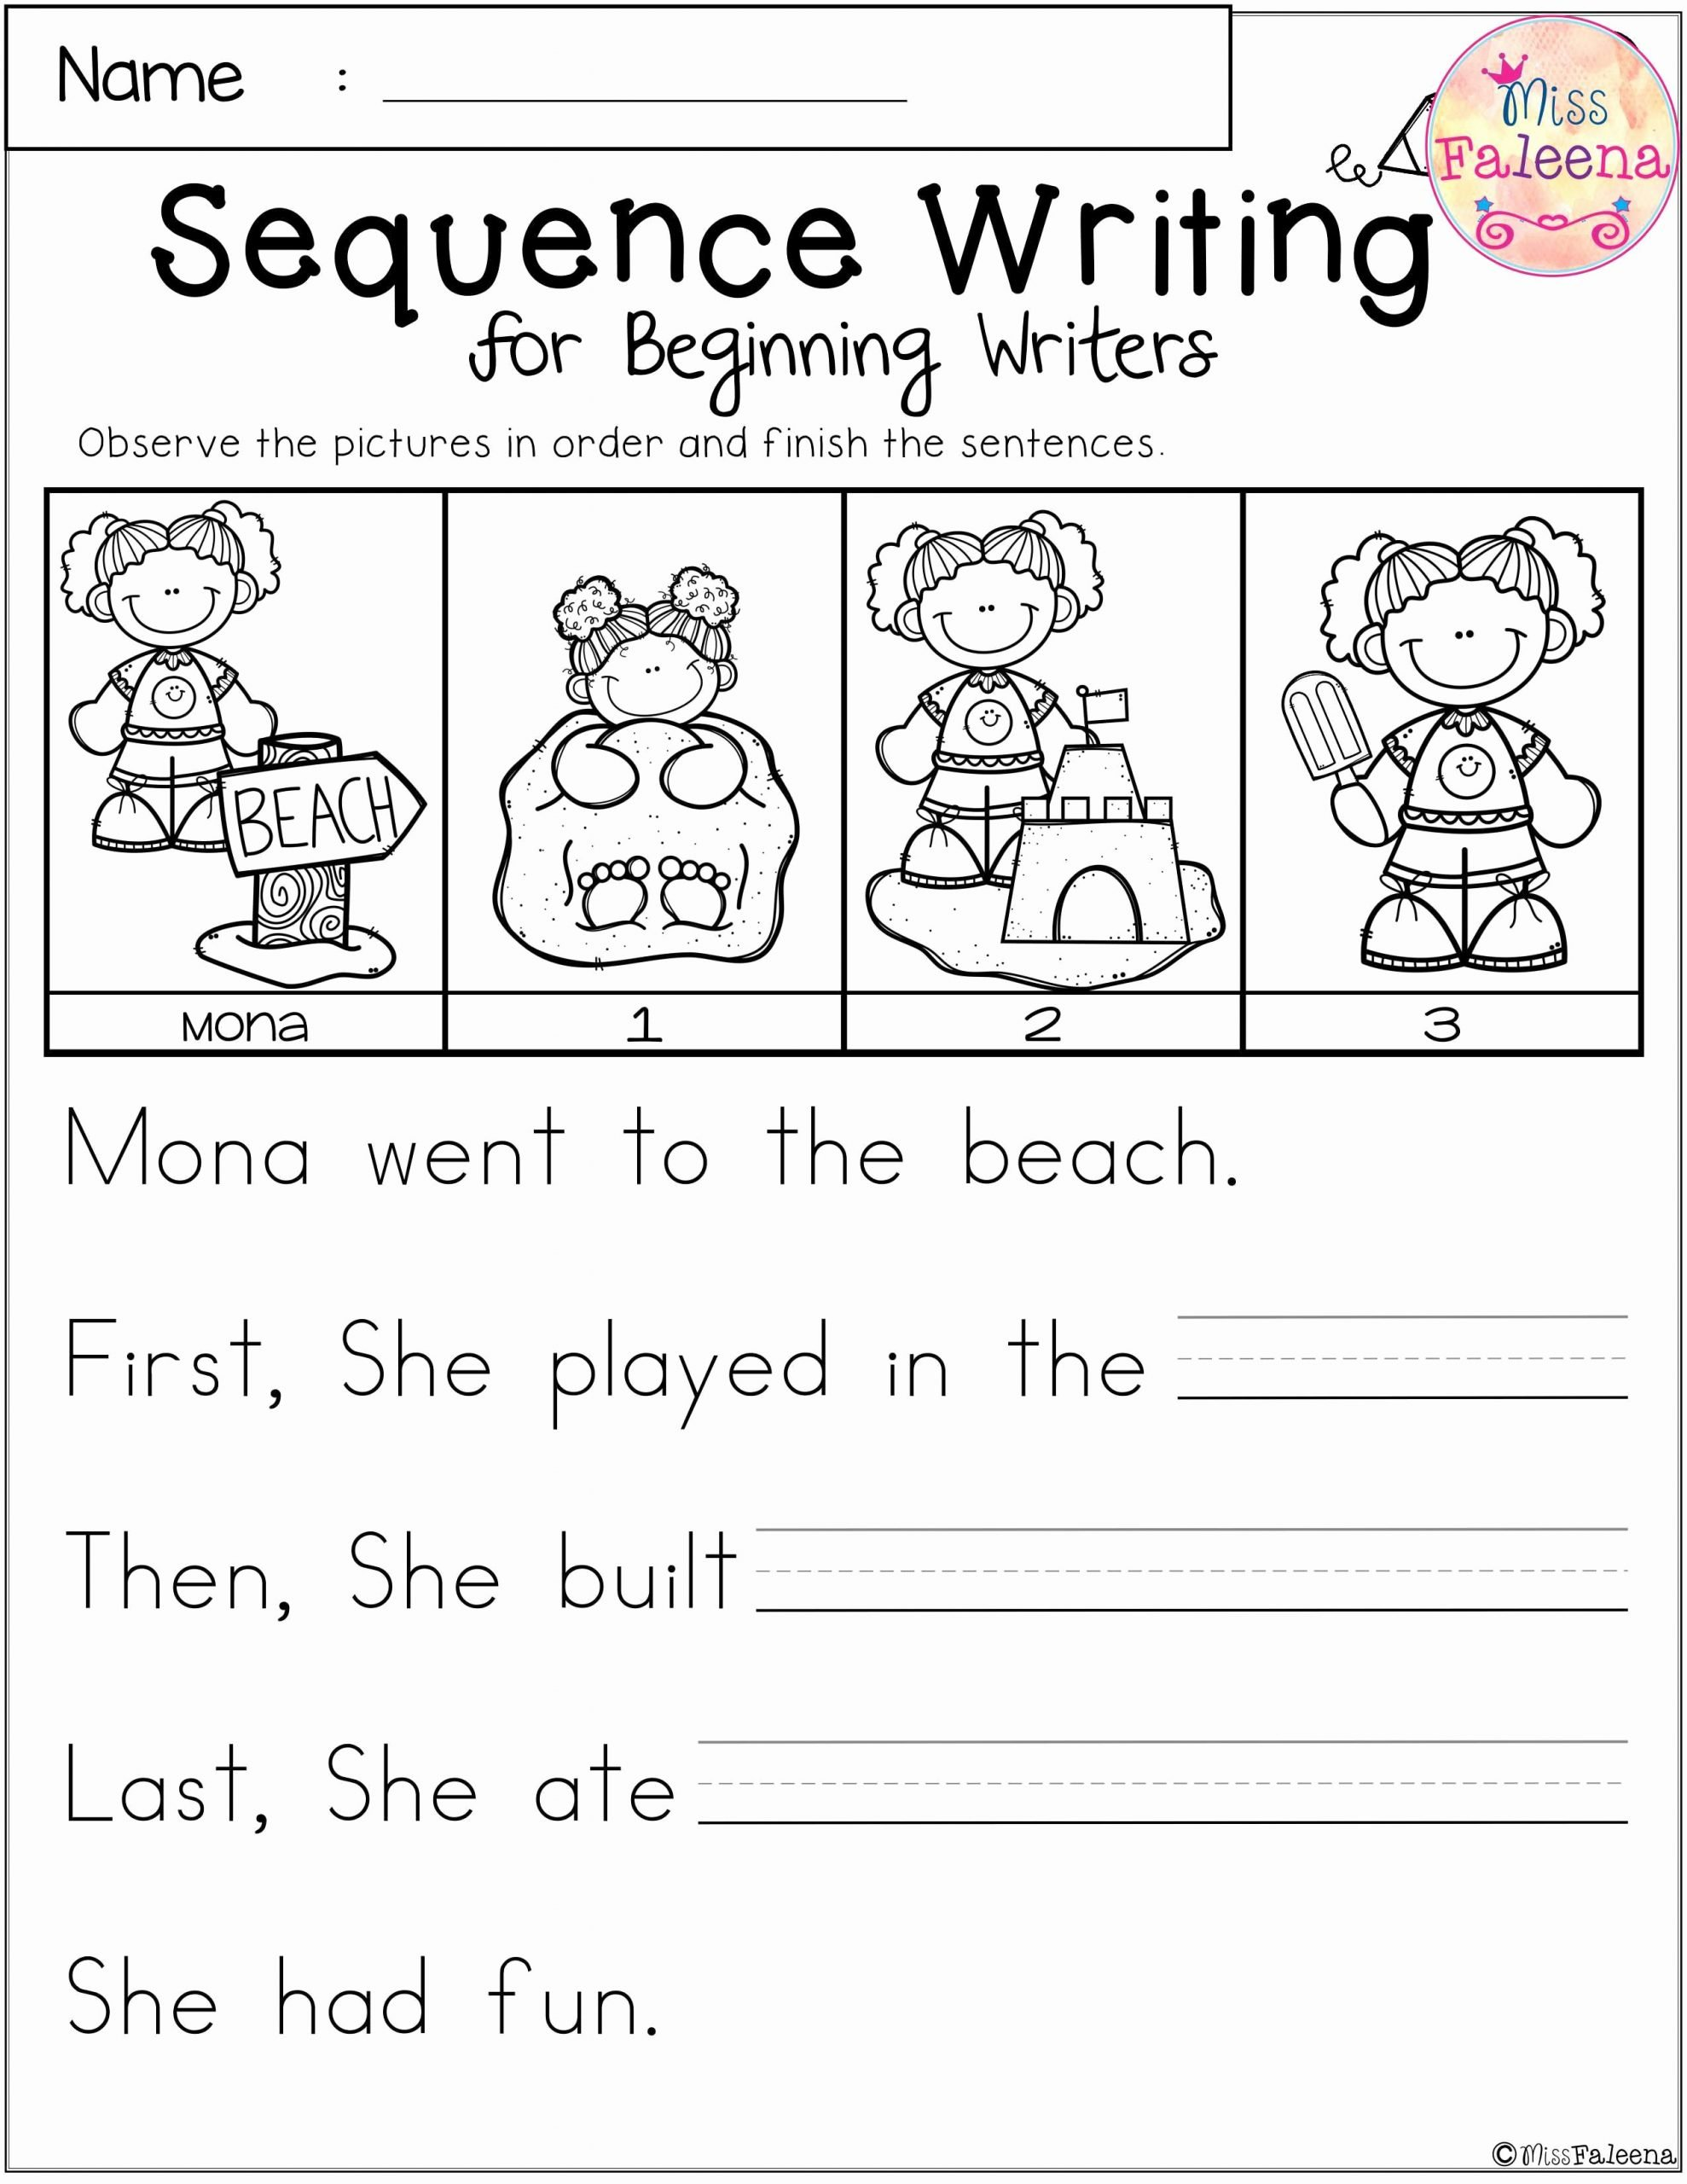 Free Sequencing Worksheets for Preschoolers Kids Free Sequence Writing for Beginning Writers